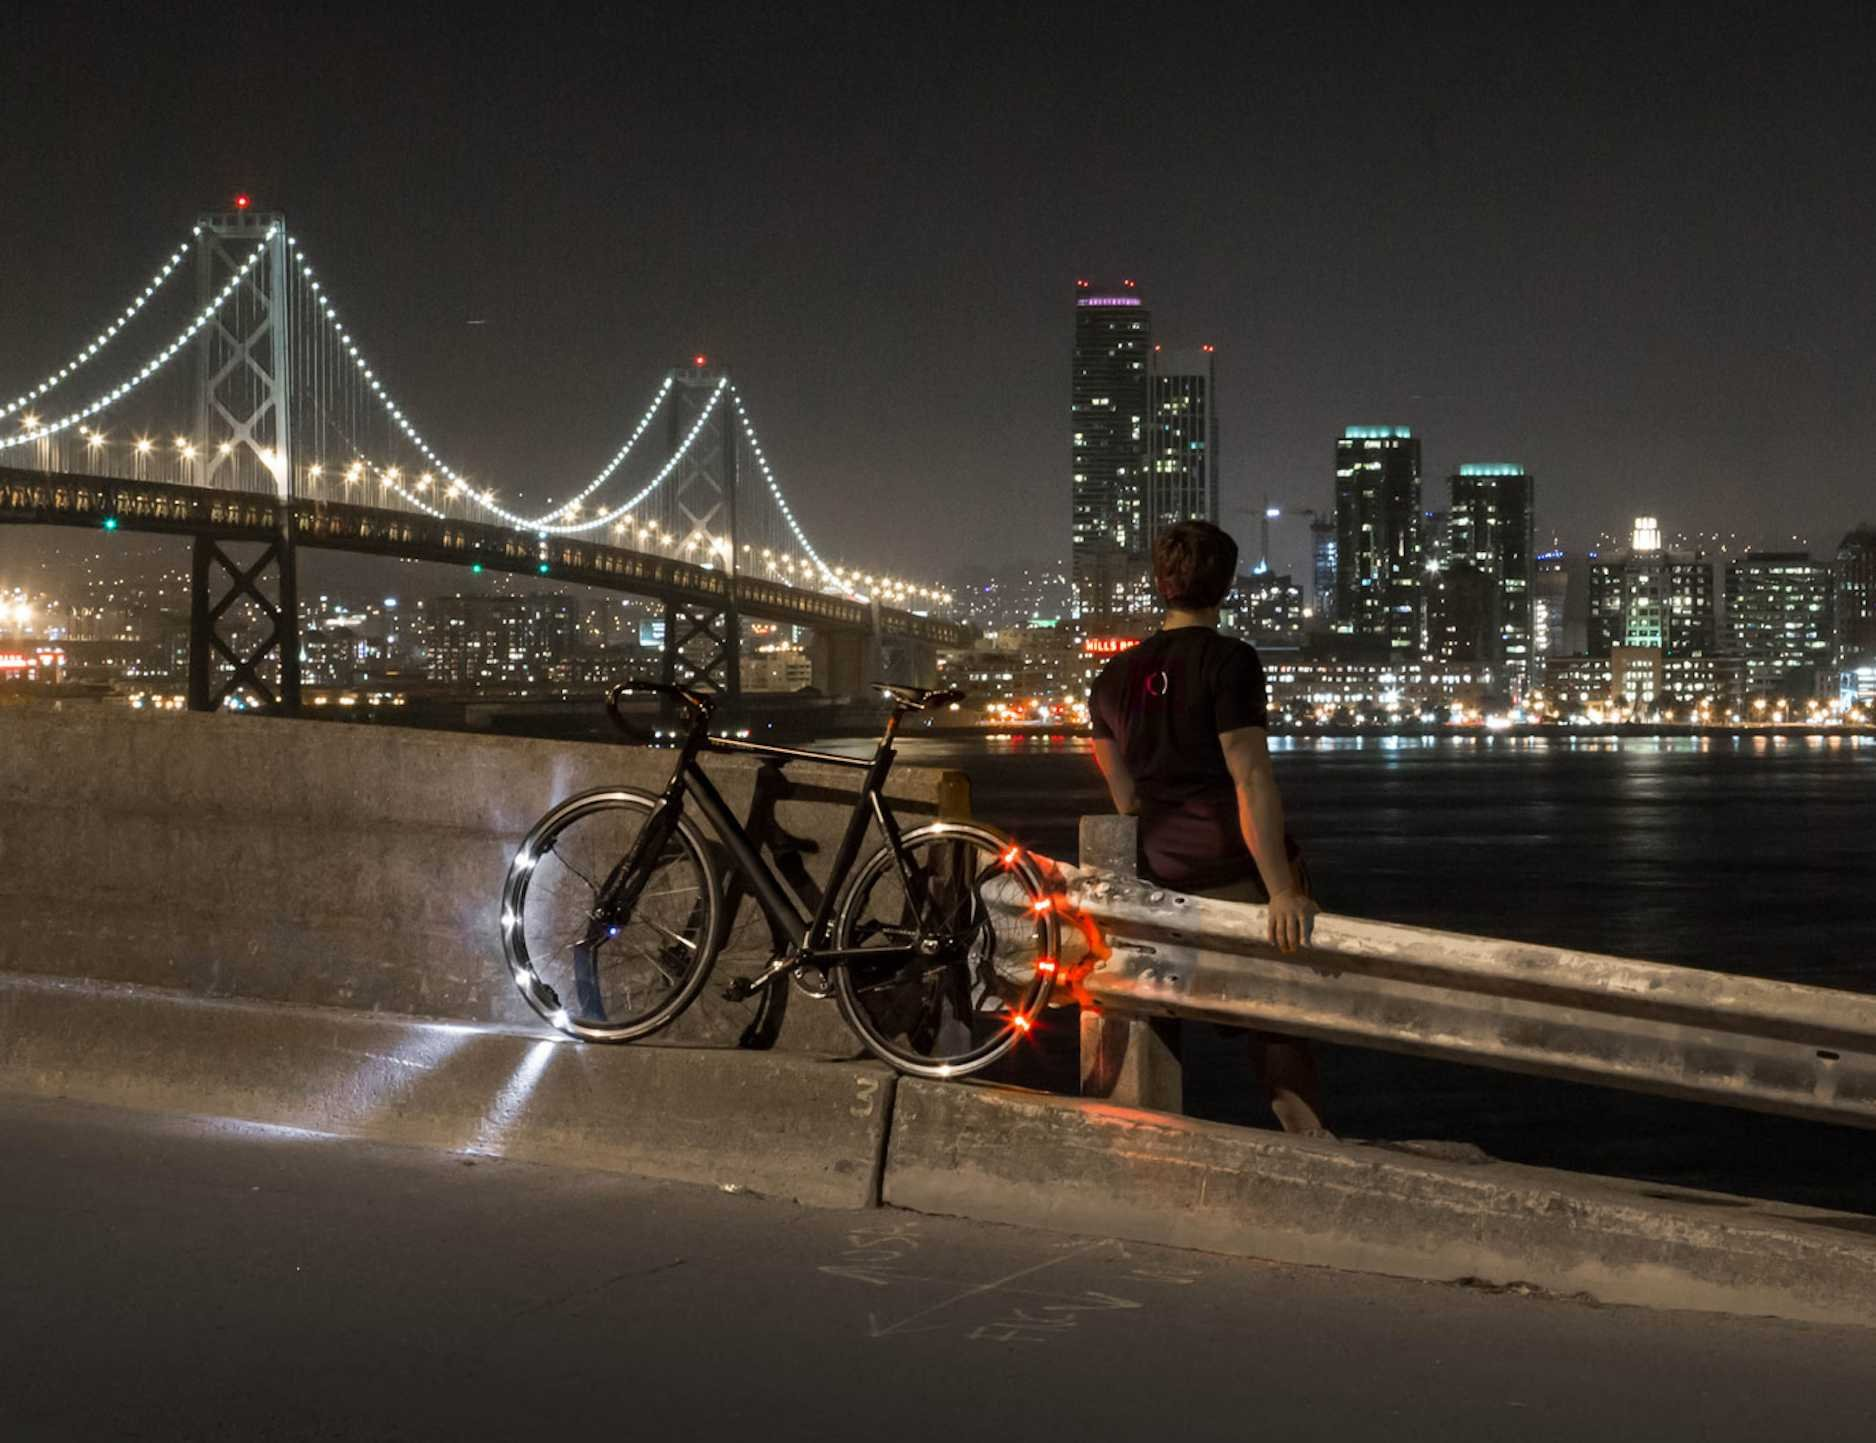 Revolights Eclipse Bicycle Lighting System, 700c/27-Inch by Revolights (Image #5)